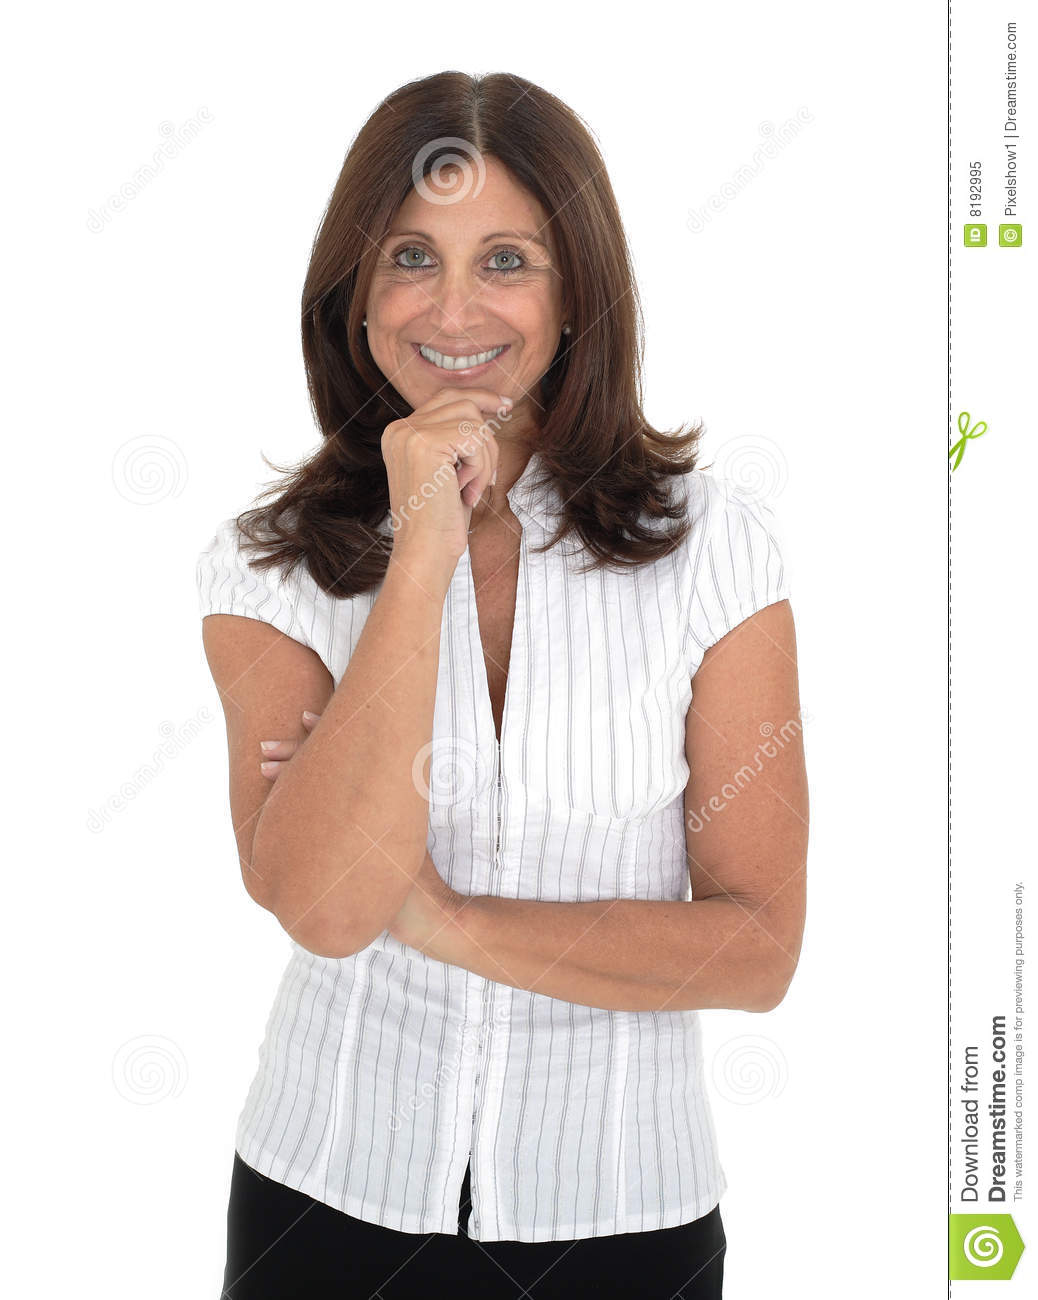 left hand hispanic single women What does it mean when a woman  plentyoffish dating forums are a place to meet singles and get  i have a ring on the middle finger of my left hand.